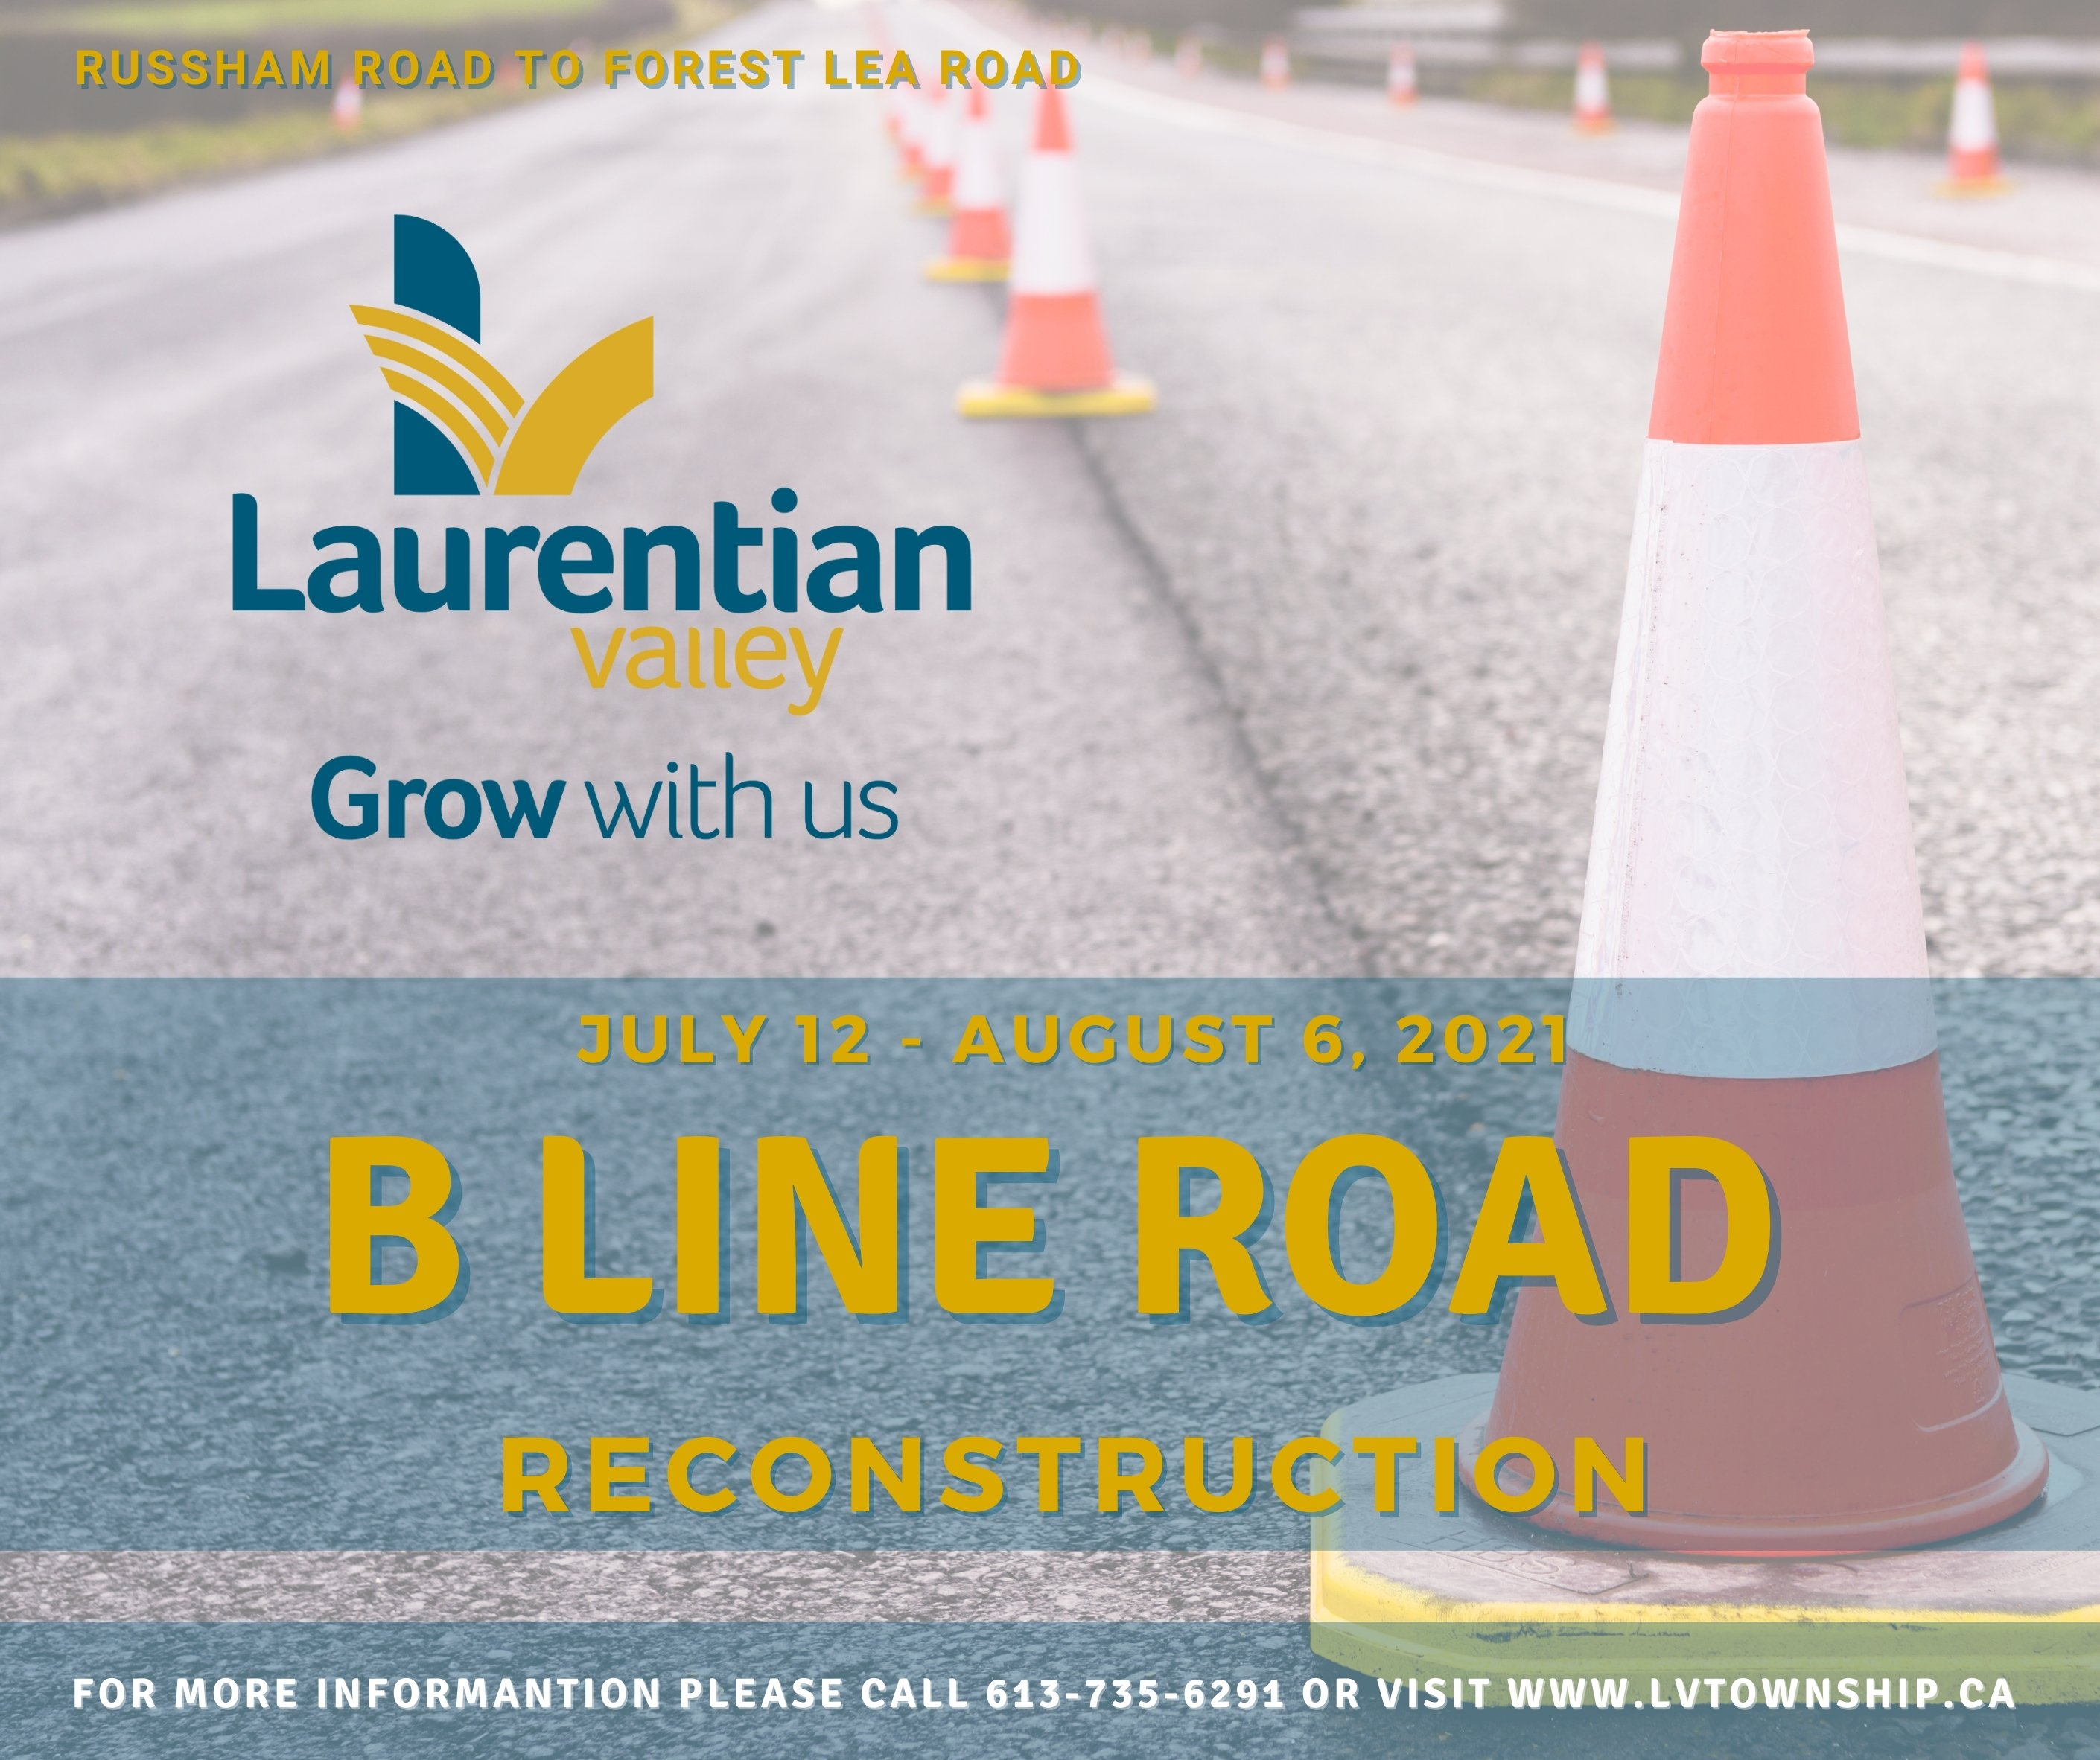 Graphic with information about road construction for B Line Road.